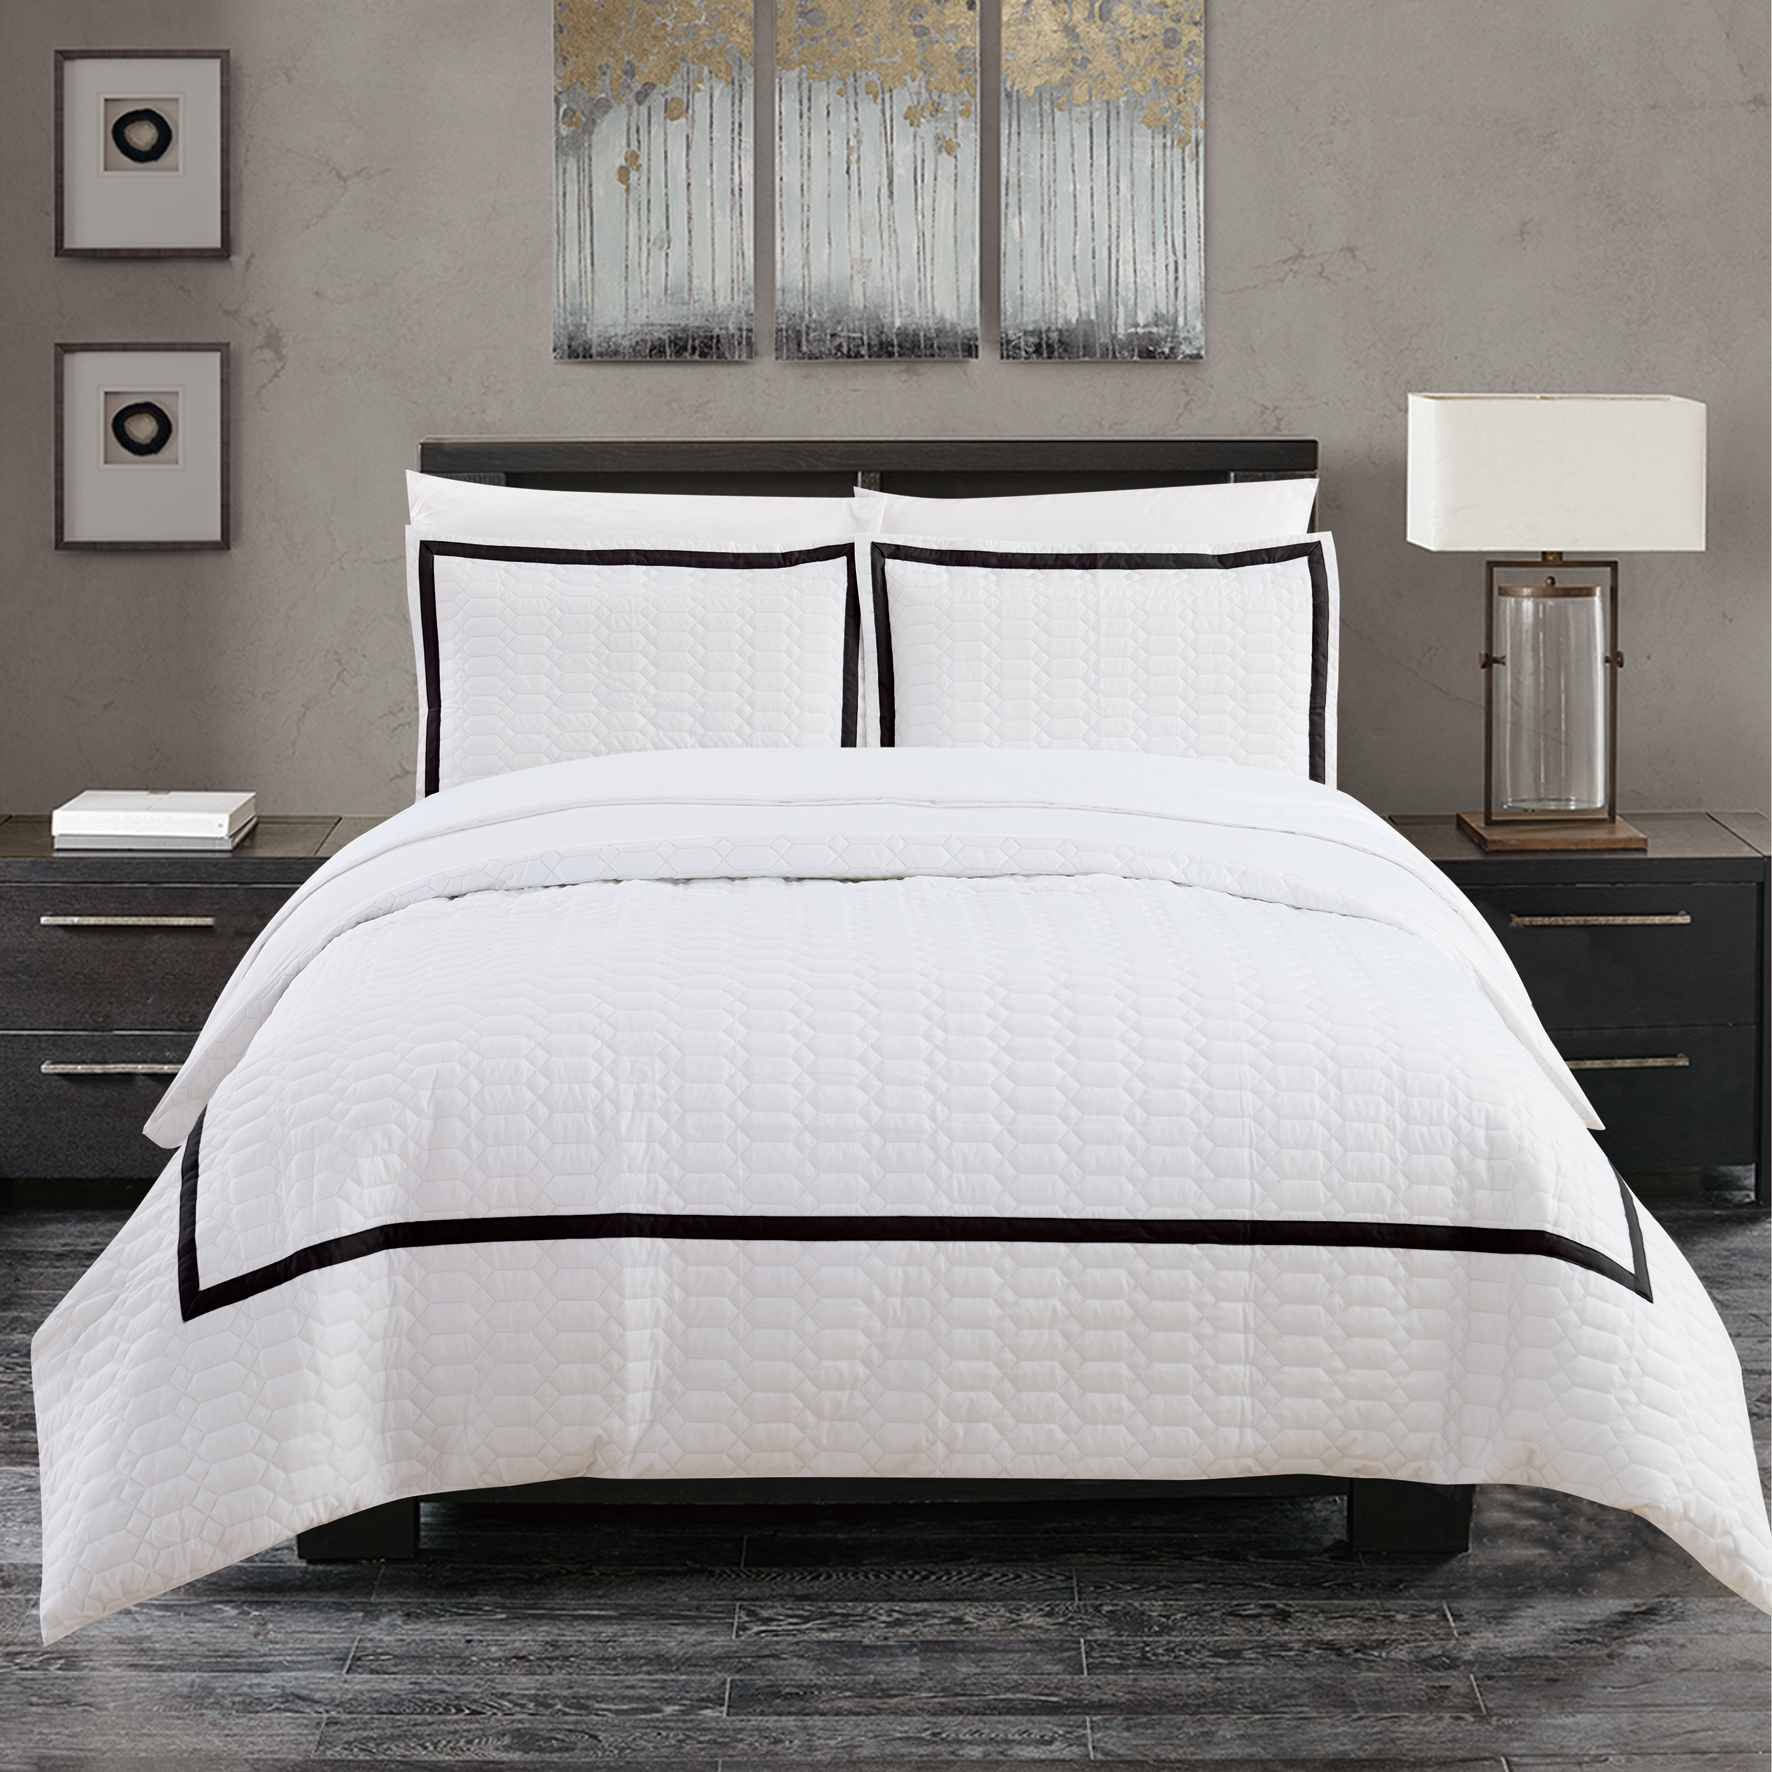 Chic Home Krystel 7 Piece Duvet Cover Set Hotel Collection Two Tone Banded Print Zipper Closure Bed in a Bag Bedding - Sheets Decorative Pillow Shams Included, King White